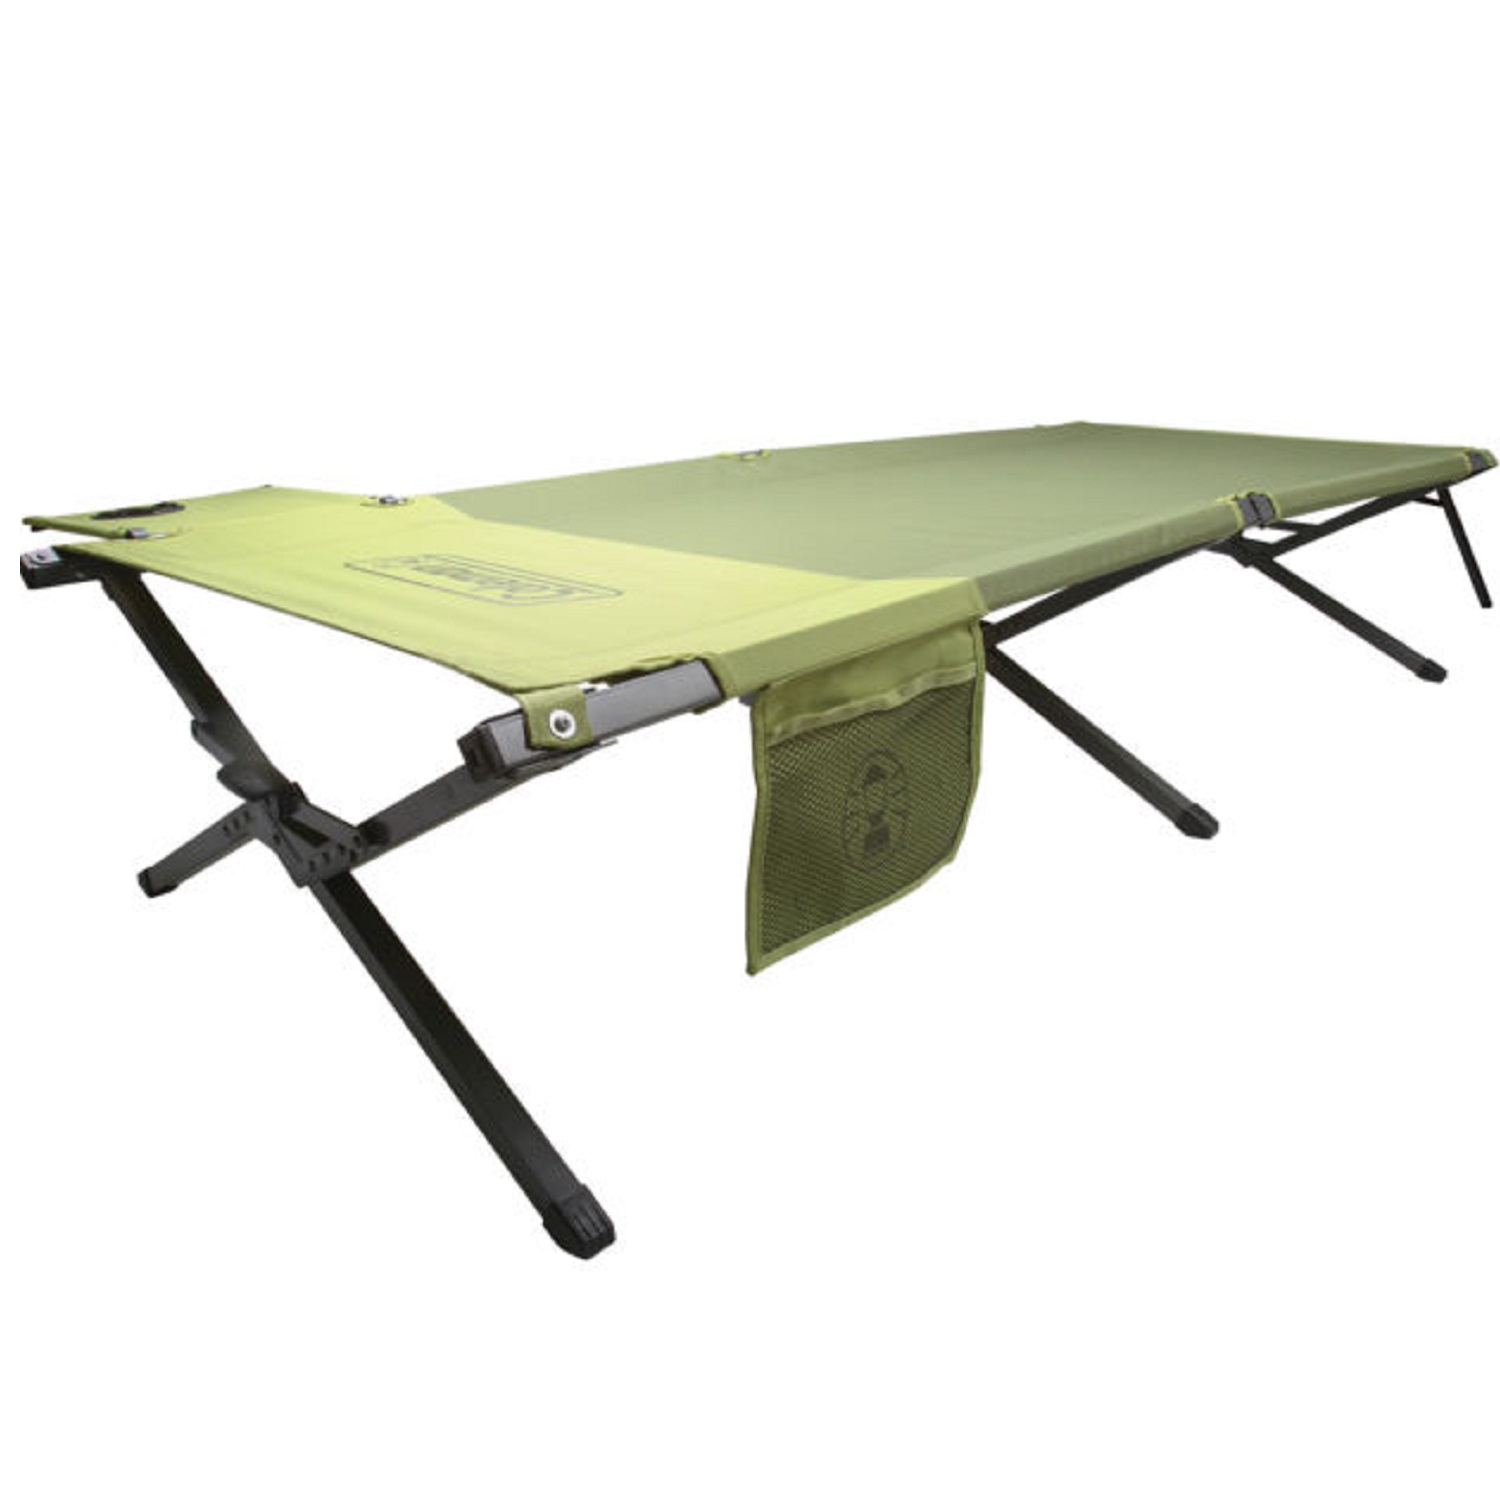 Coleman Trailhead Deluxe Footlocking Cot Green by COLEMAN